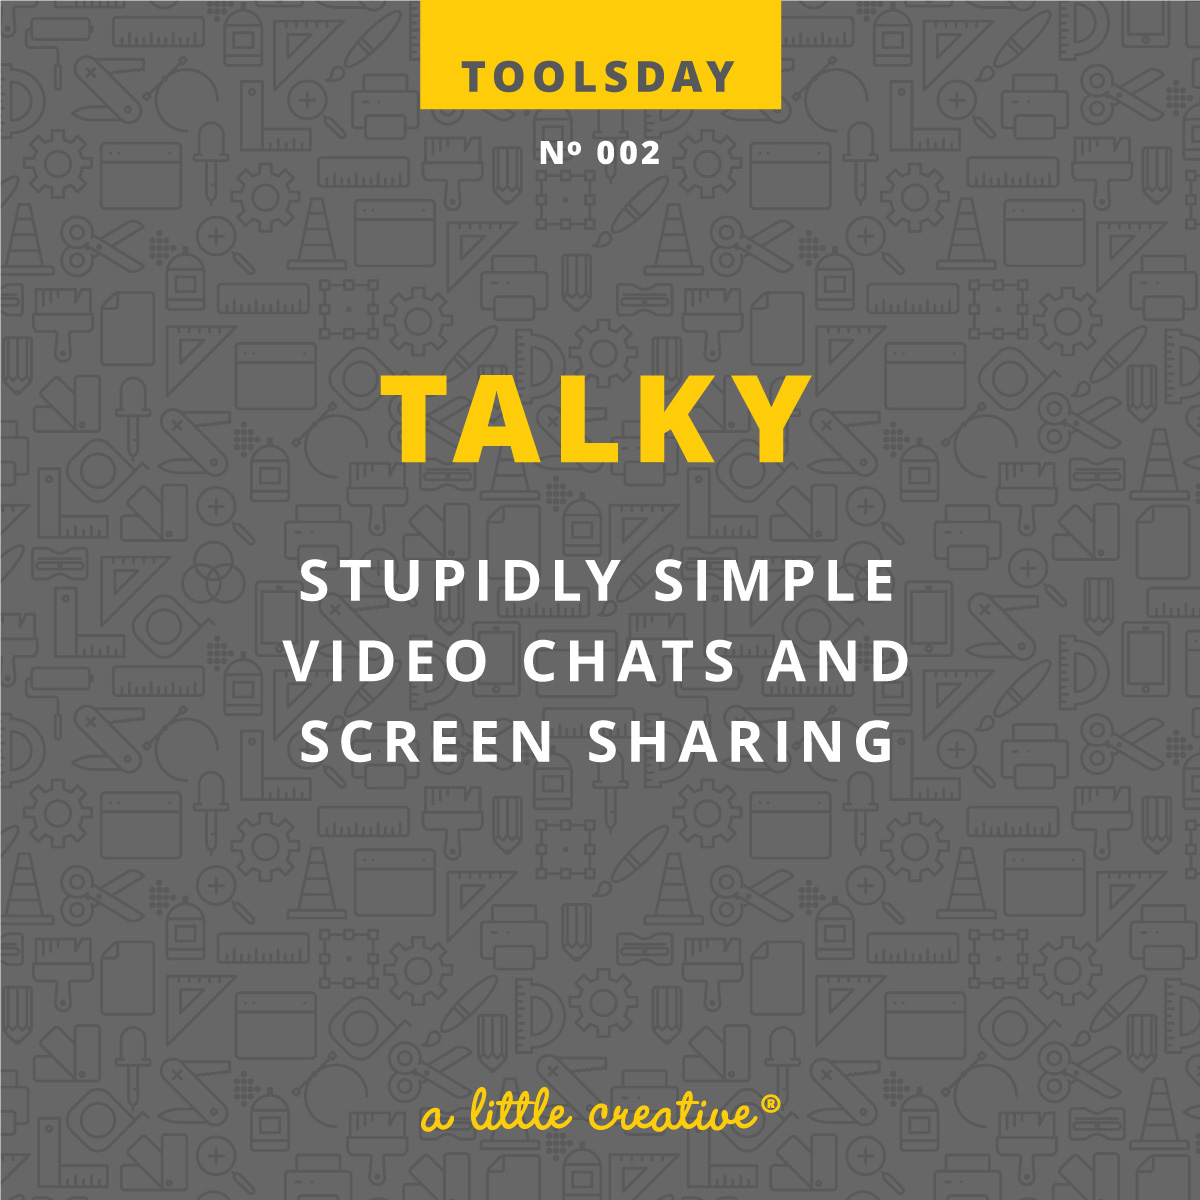 Toolsday No. 002: Talky // a little creative